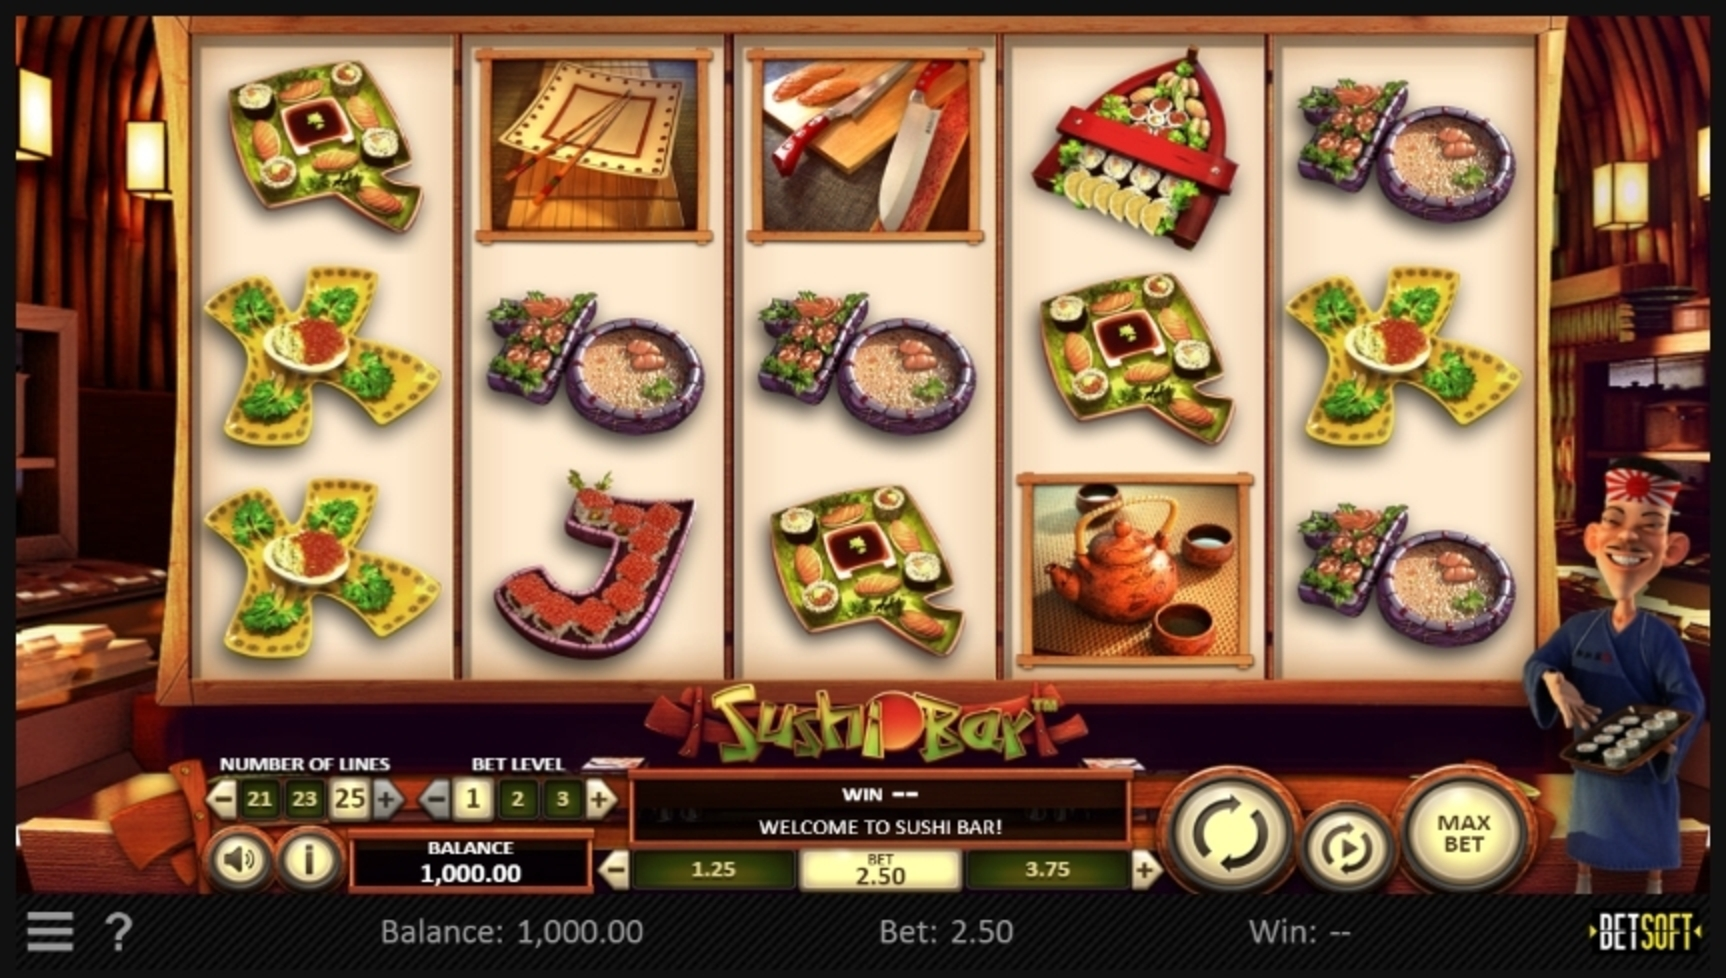 Reels in Sushi Bar Slot Game by Betsoft